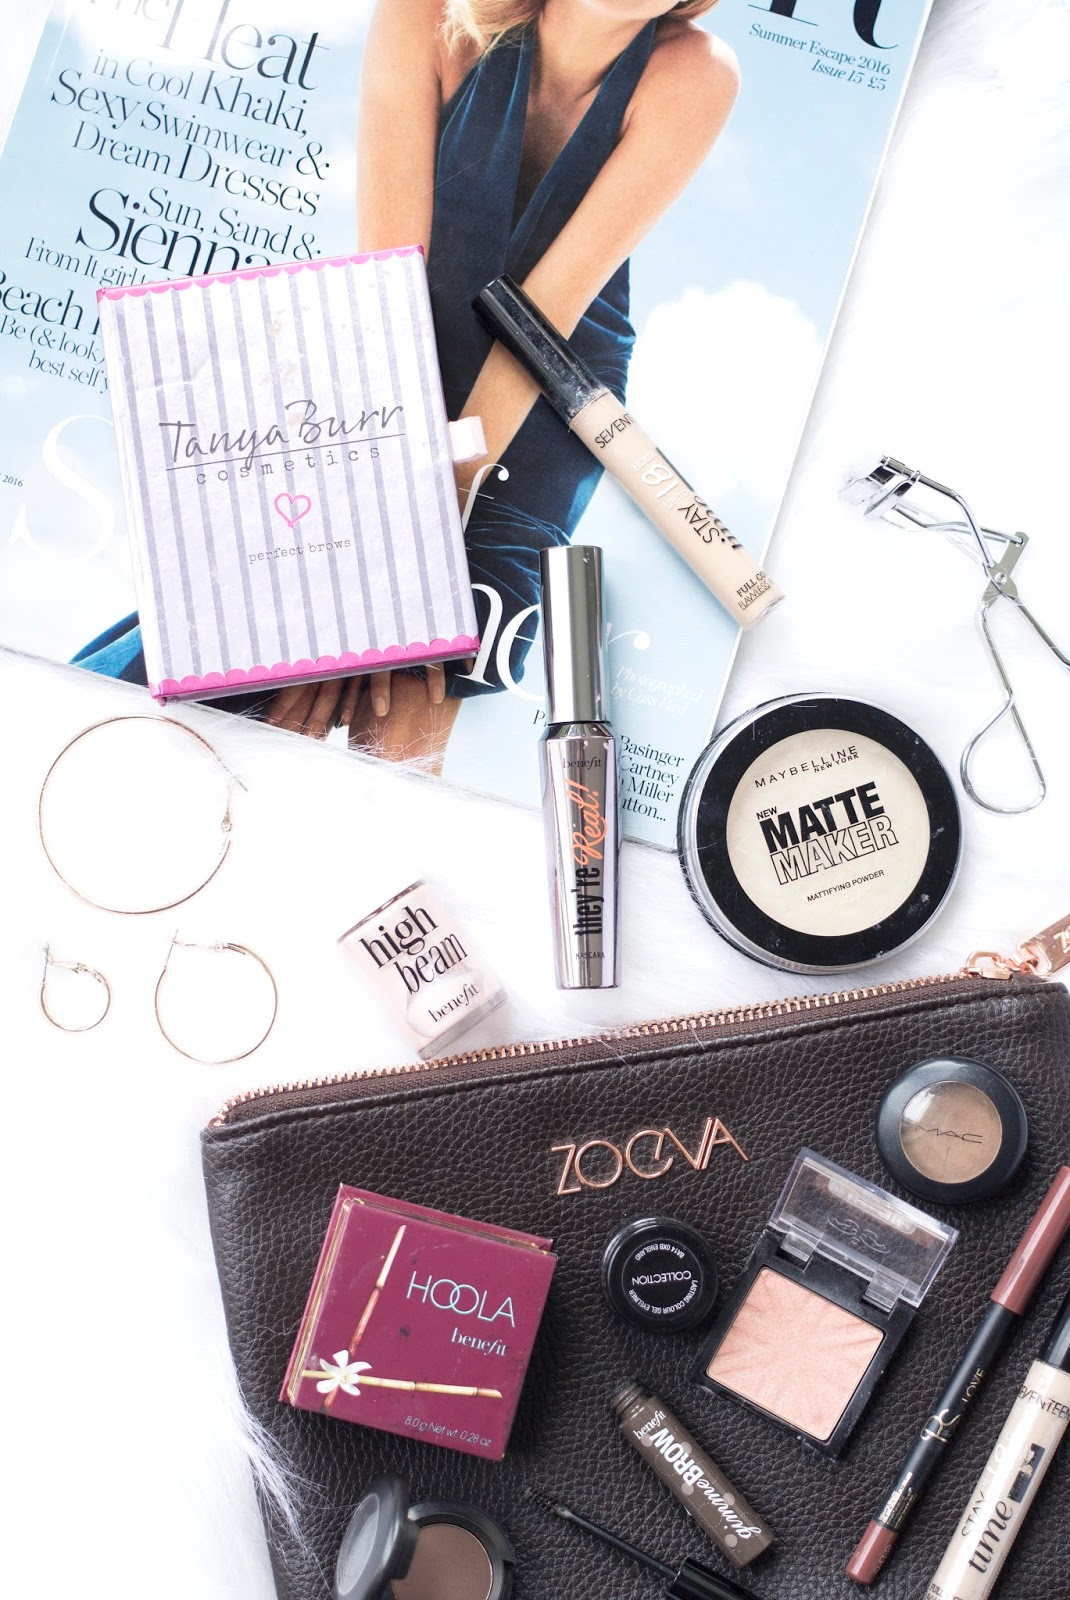 JUNE'S MAKE UP BAG